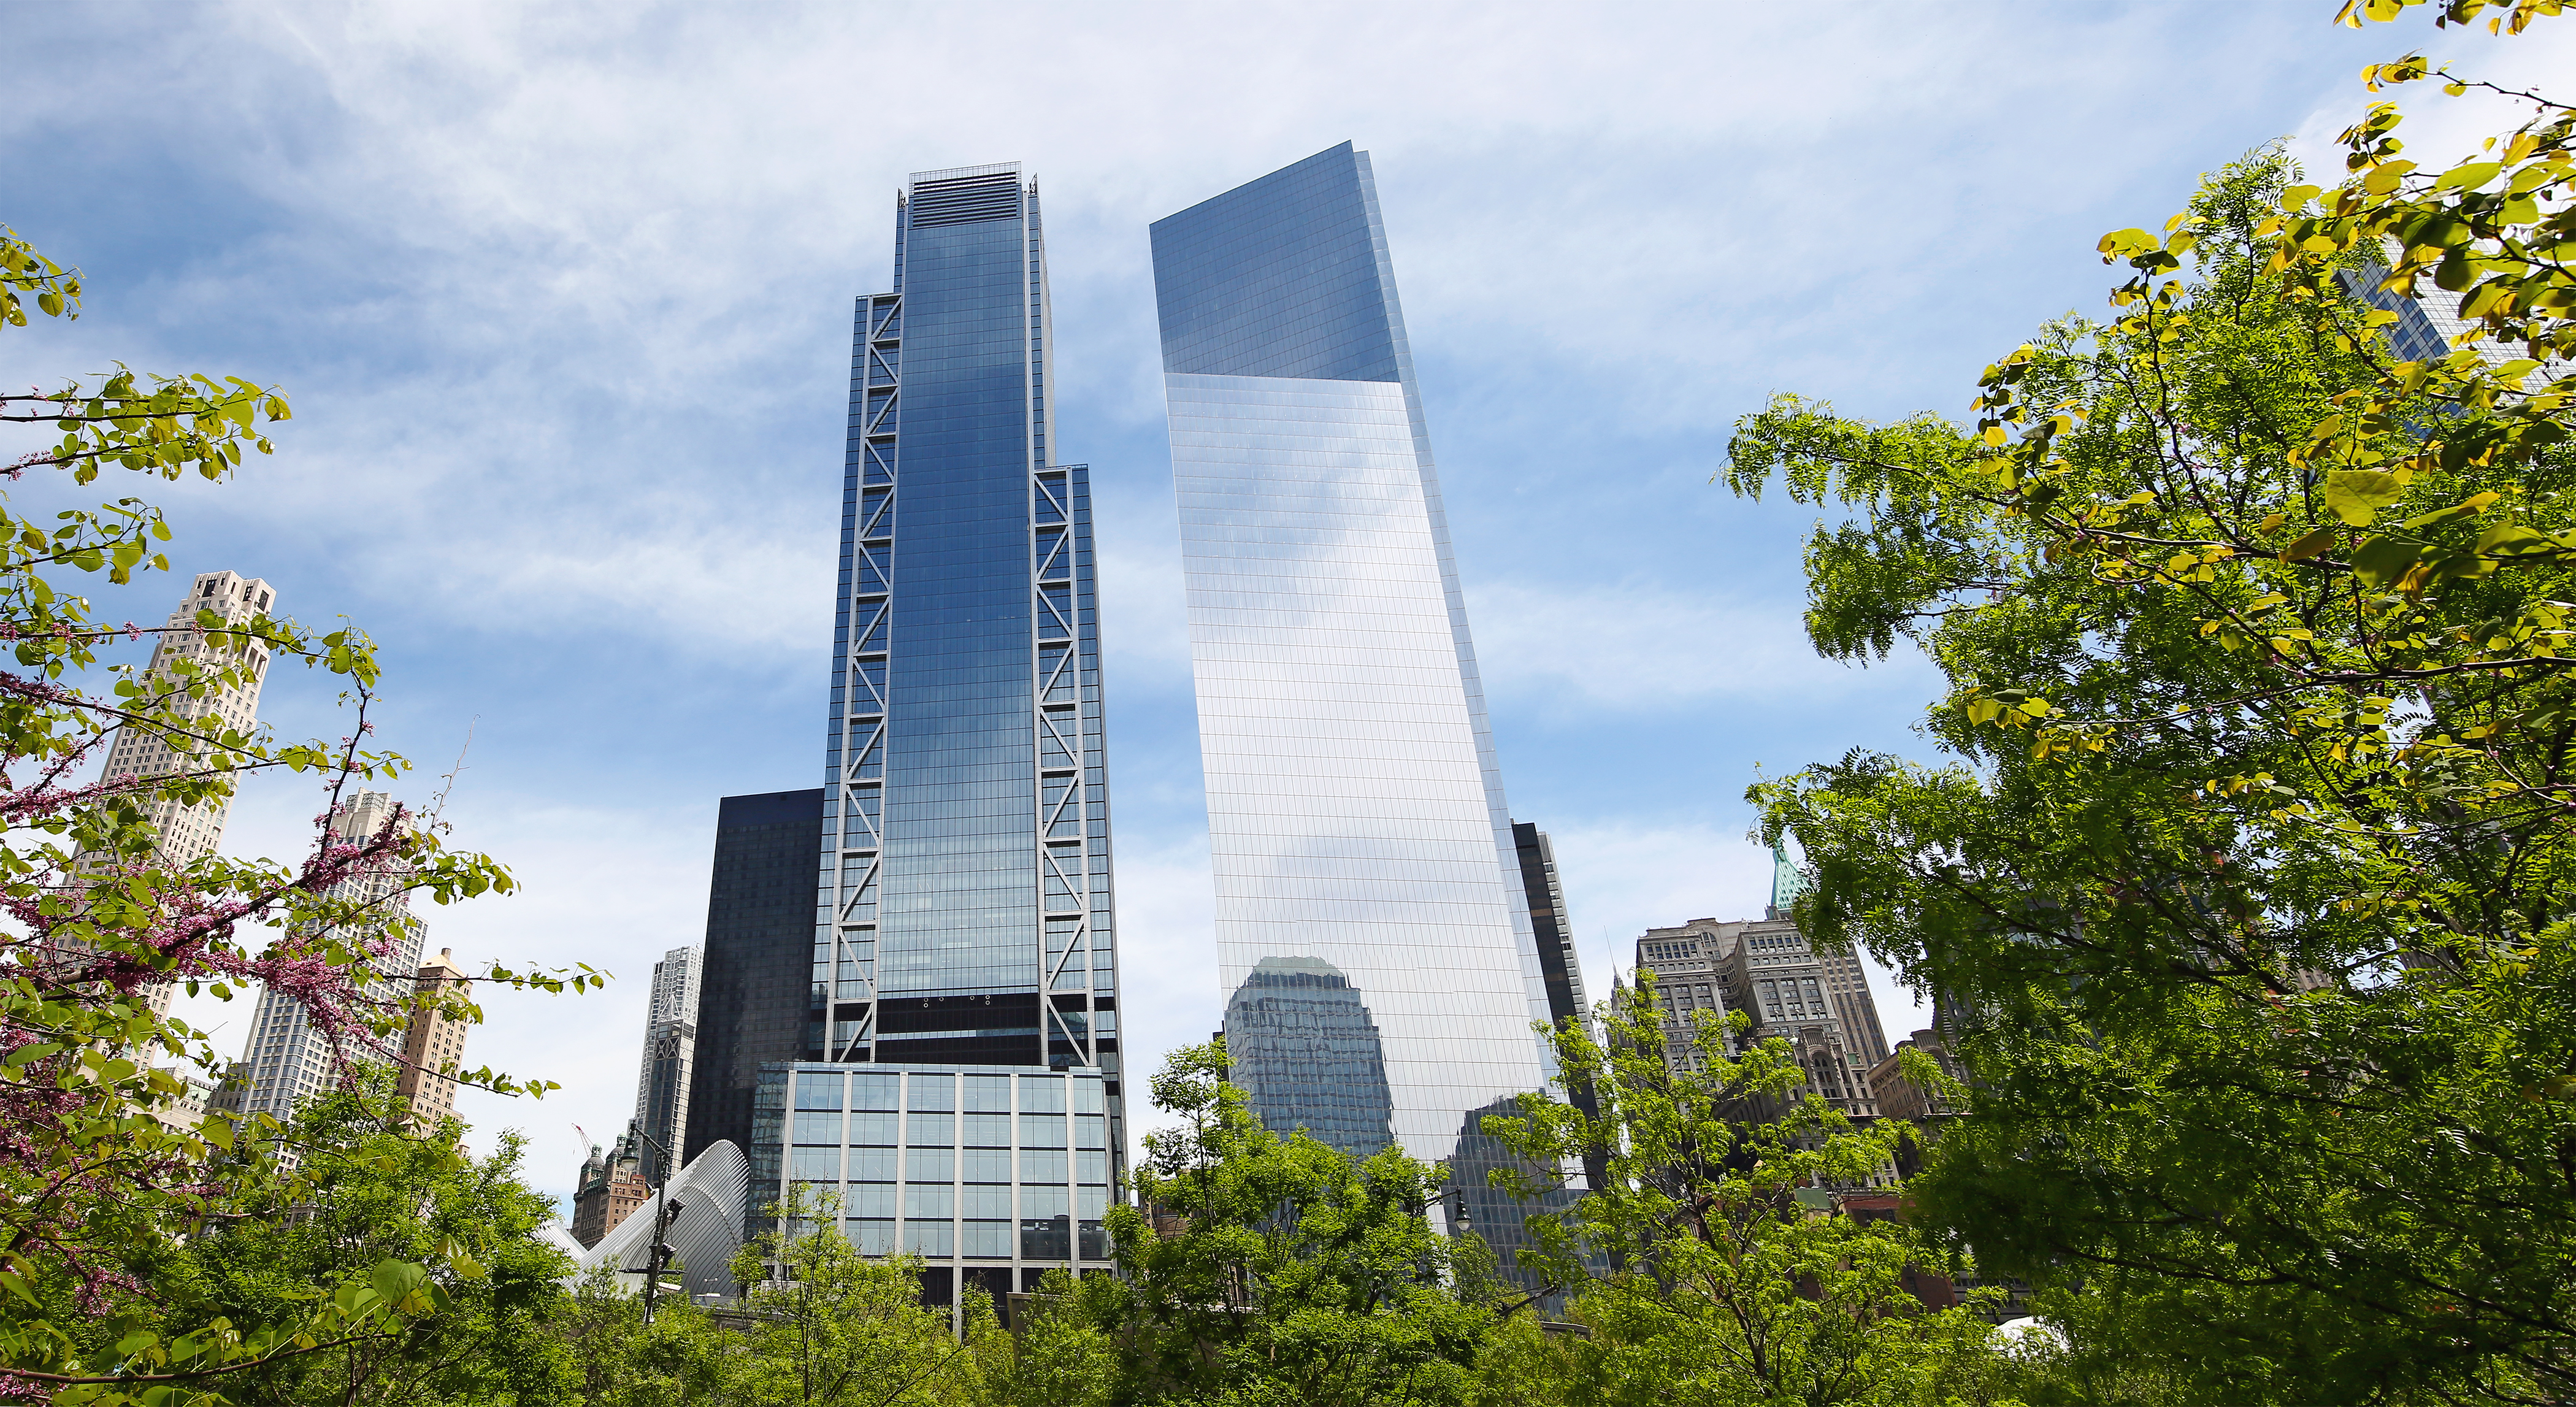 New 3 World Trade Center to mark another step in NYC's downtown revival